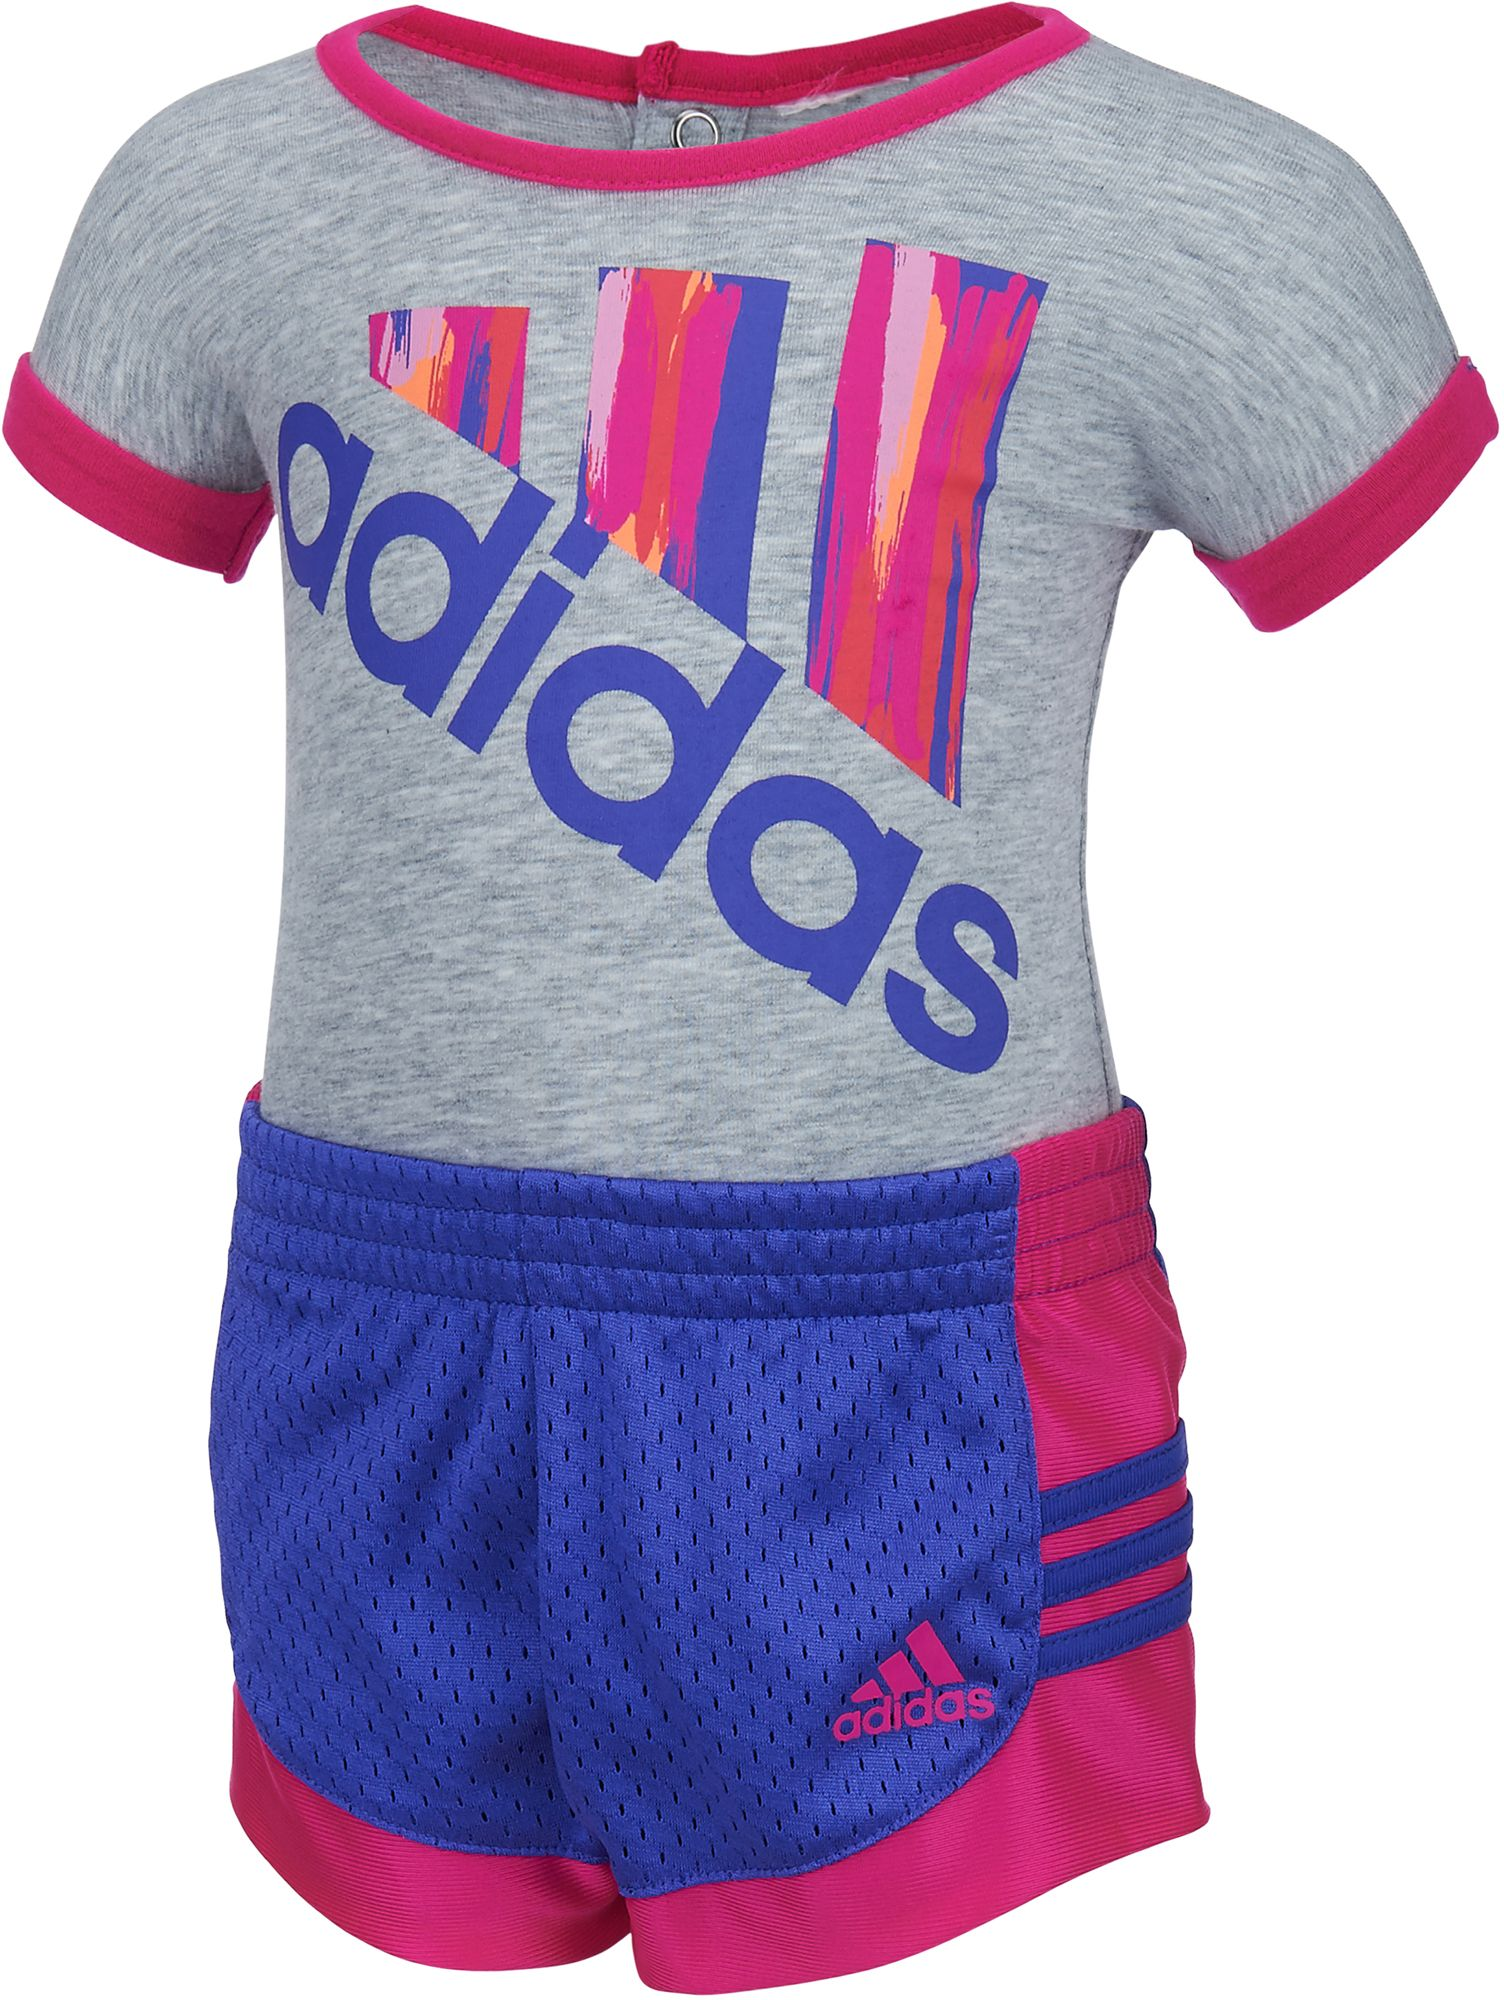 adidas Infant Girls Performance Bodysuit and Shorts Set DICKS Sporting Goods